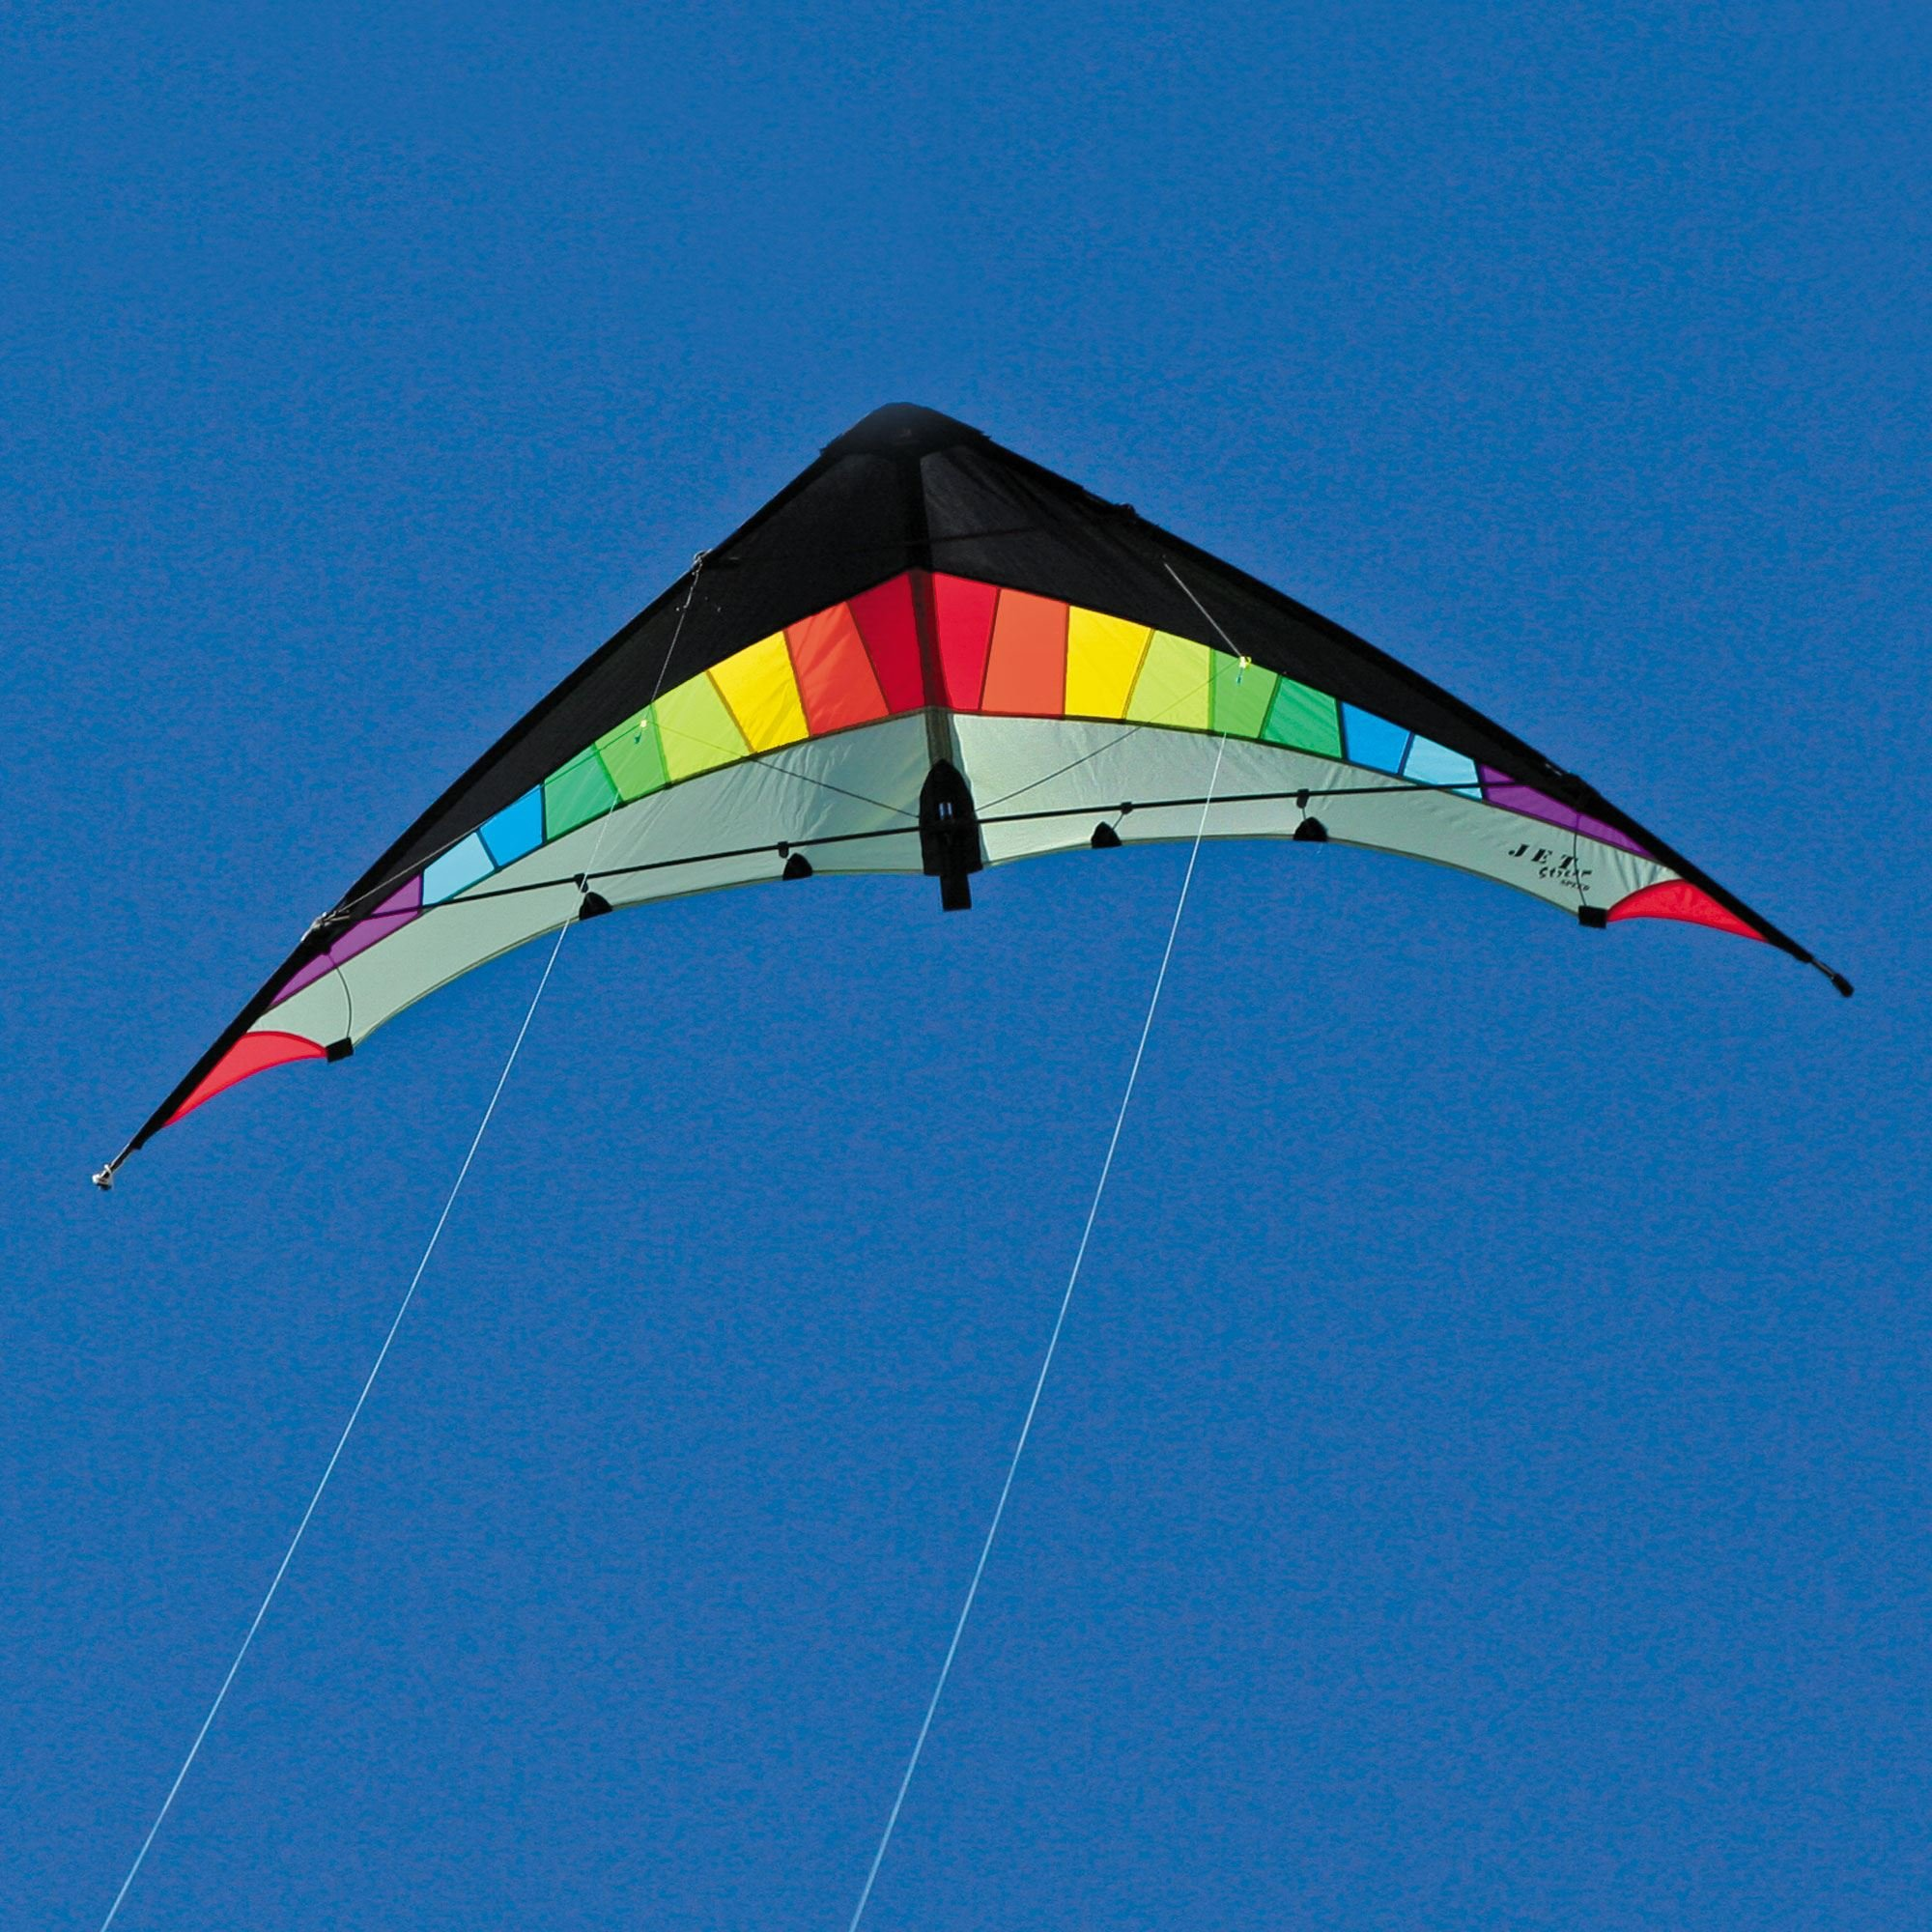 Jet-Stream Speed Dual line Stunt Kite by Elliot